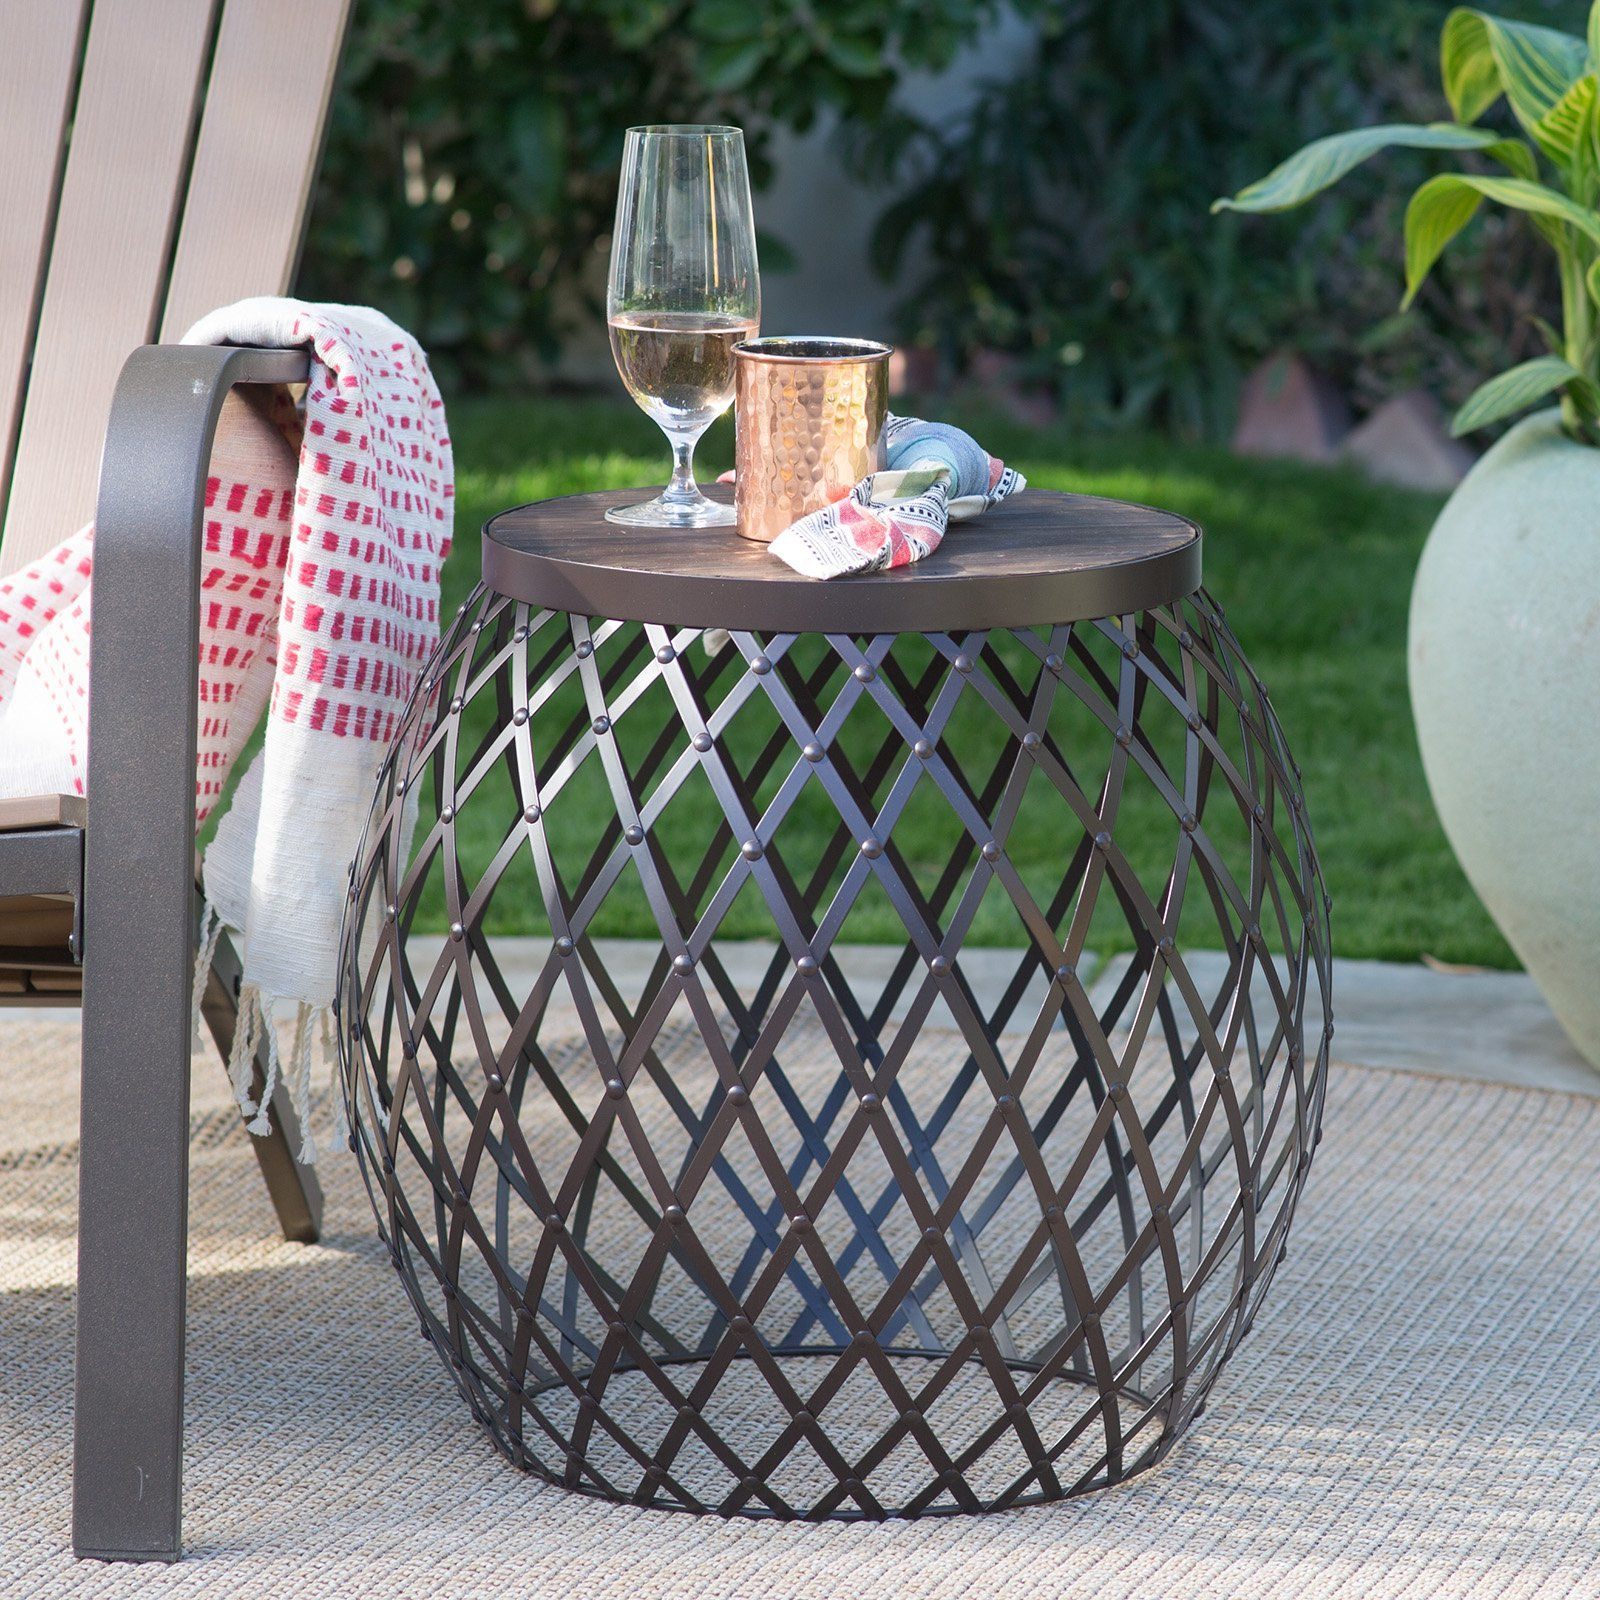 depot rustic image size home table tables round of full coffee patio walmarte metal side wood collection outdoor the ideas